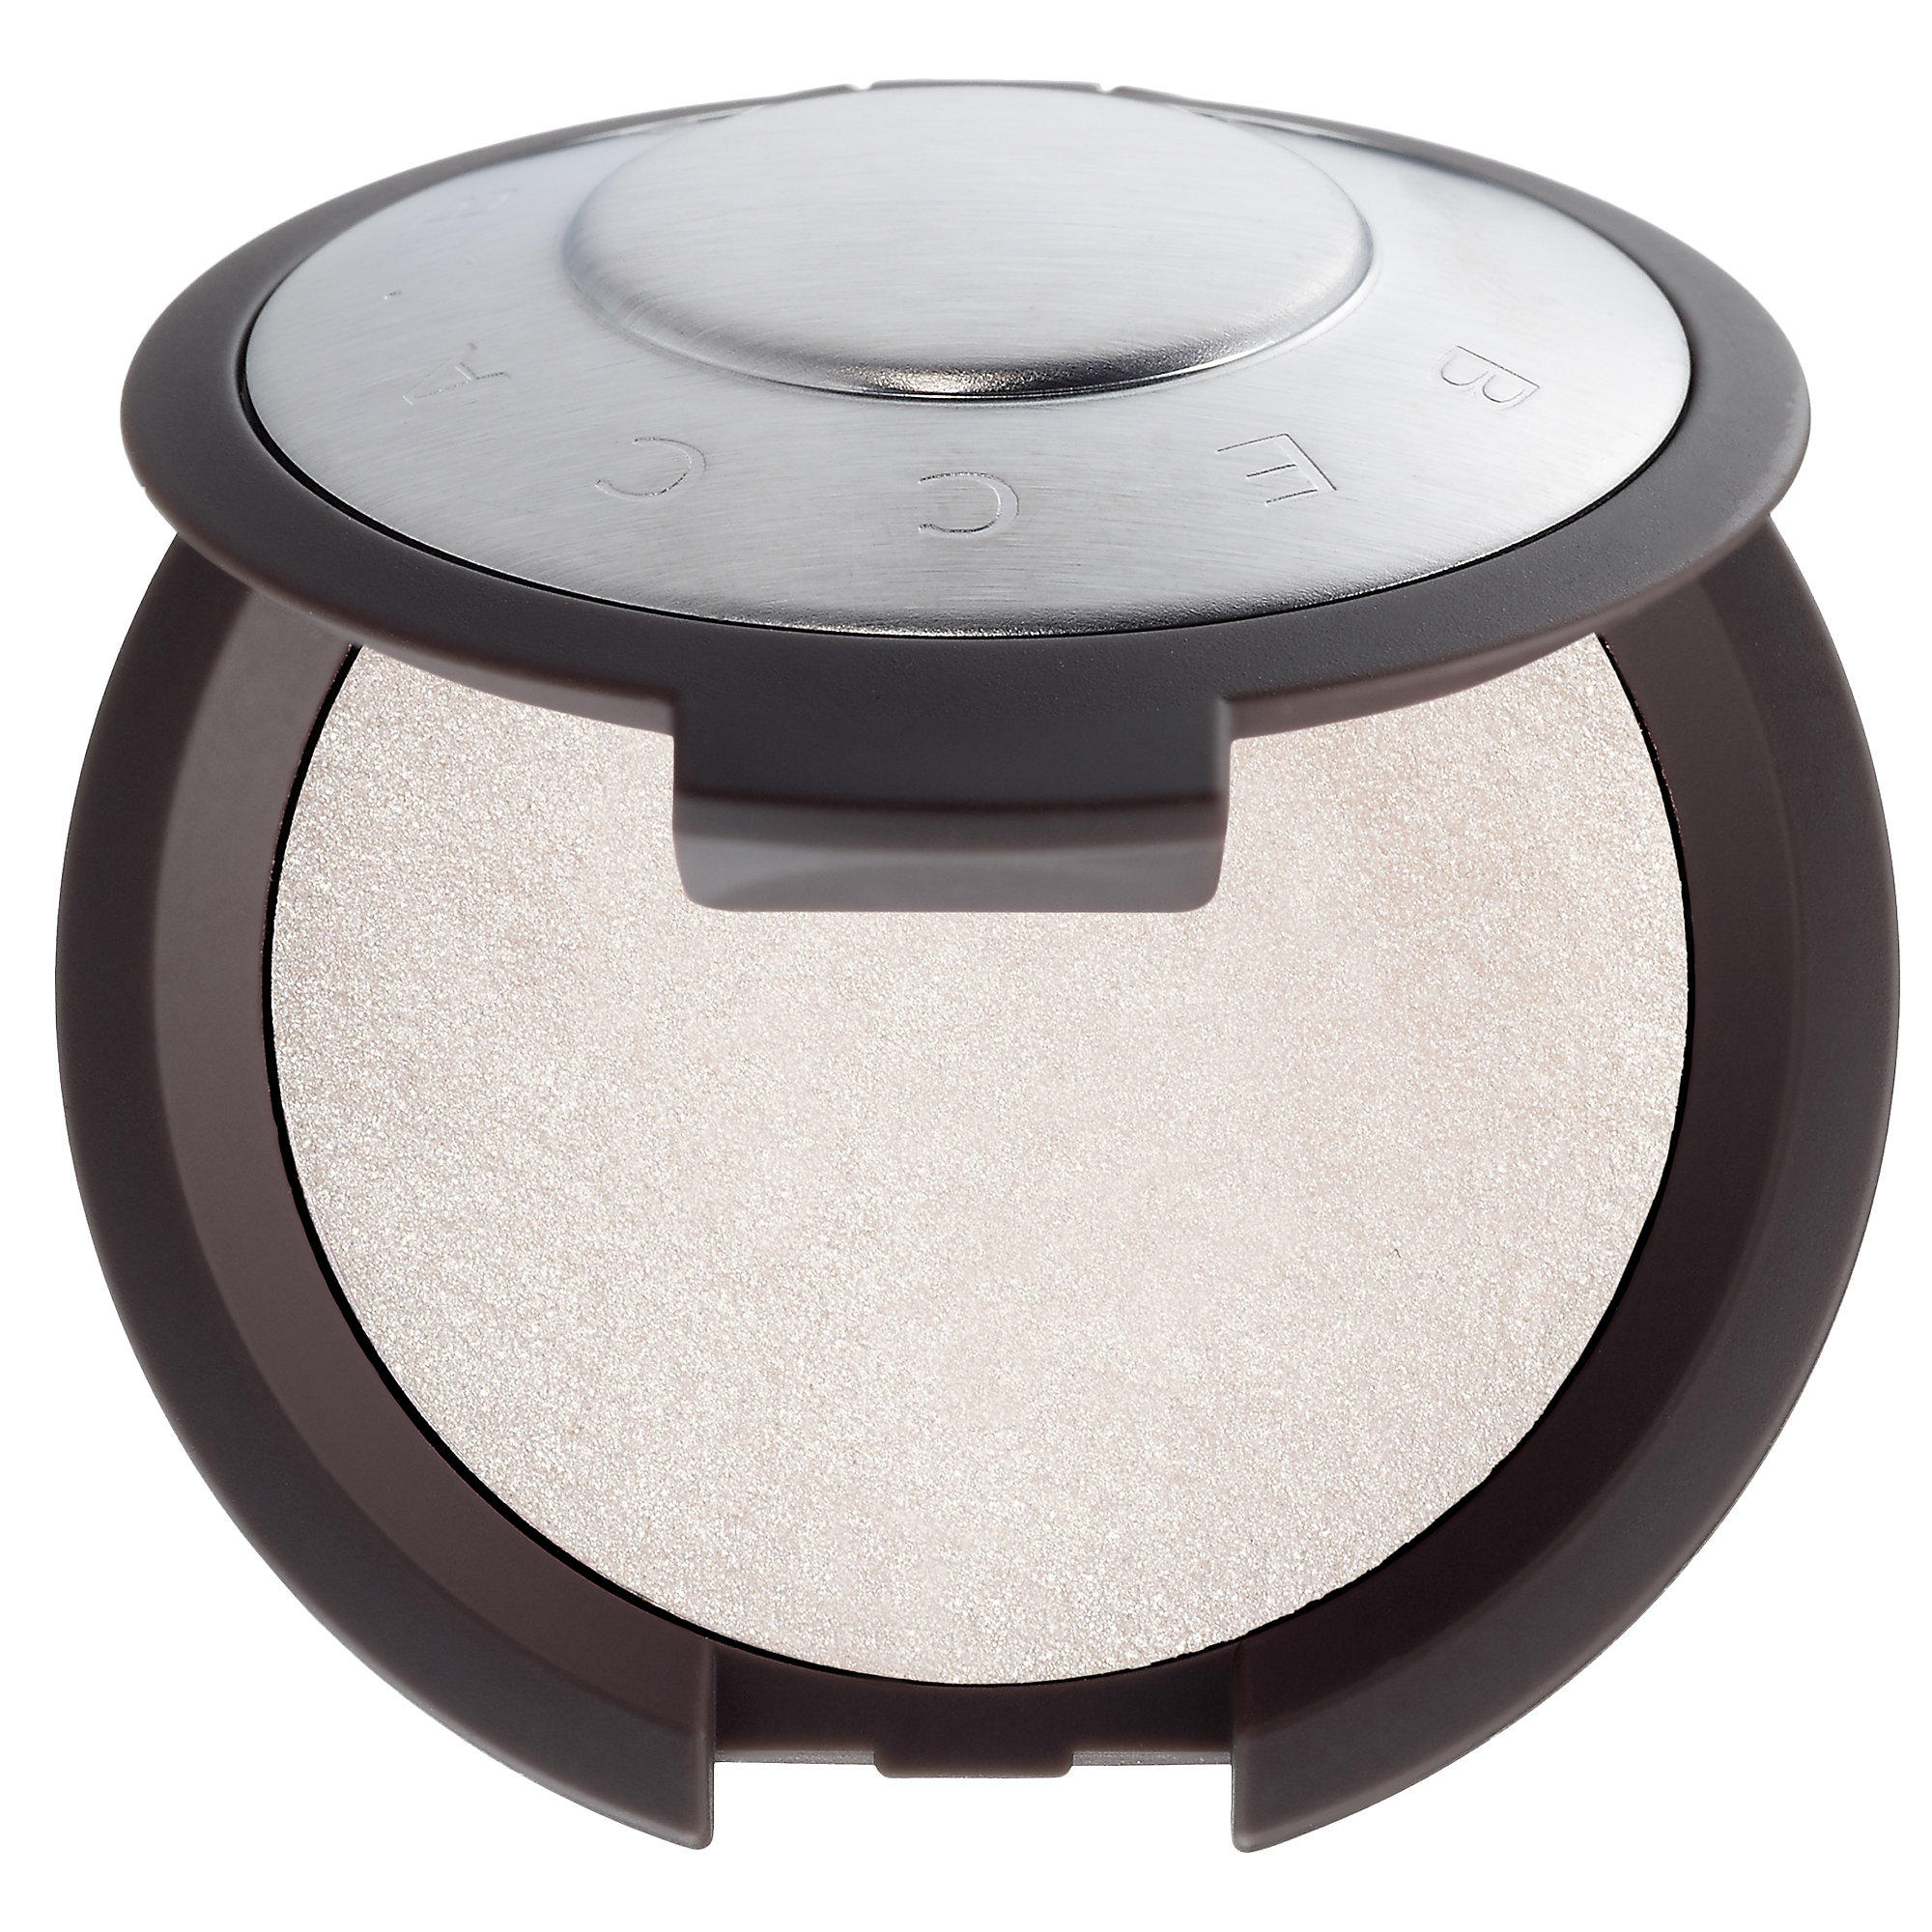 Becca lauched Shimmering Skin Perfector Pressed New Shade-Pearl